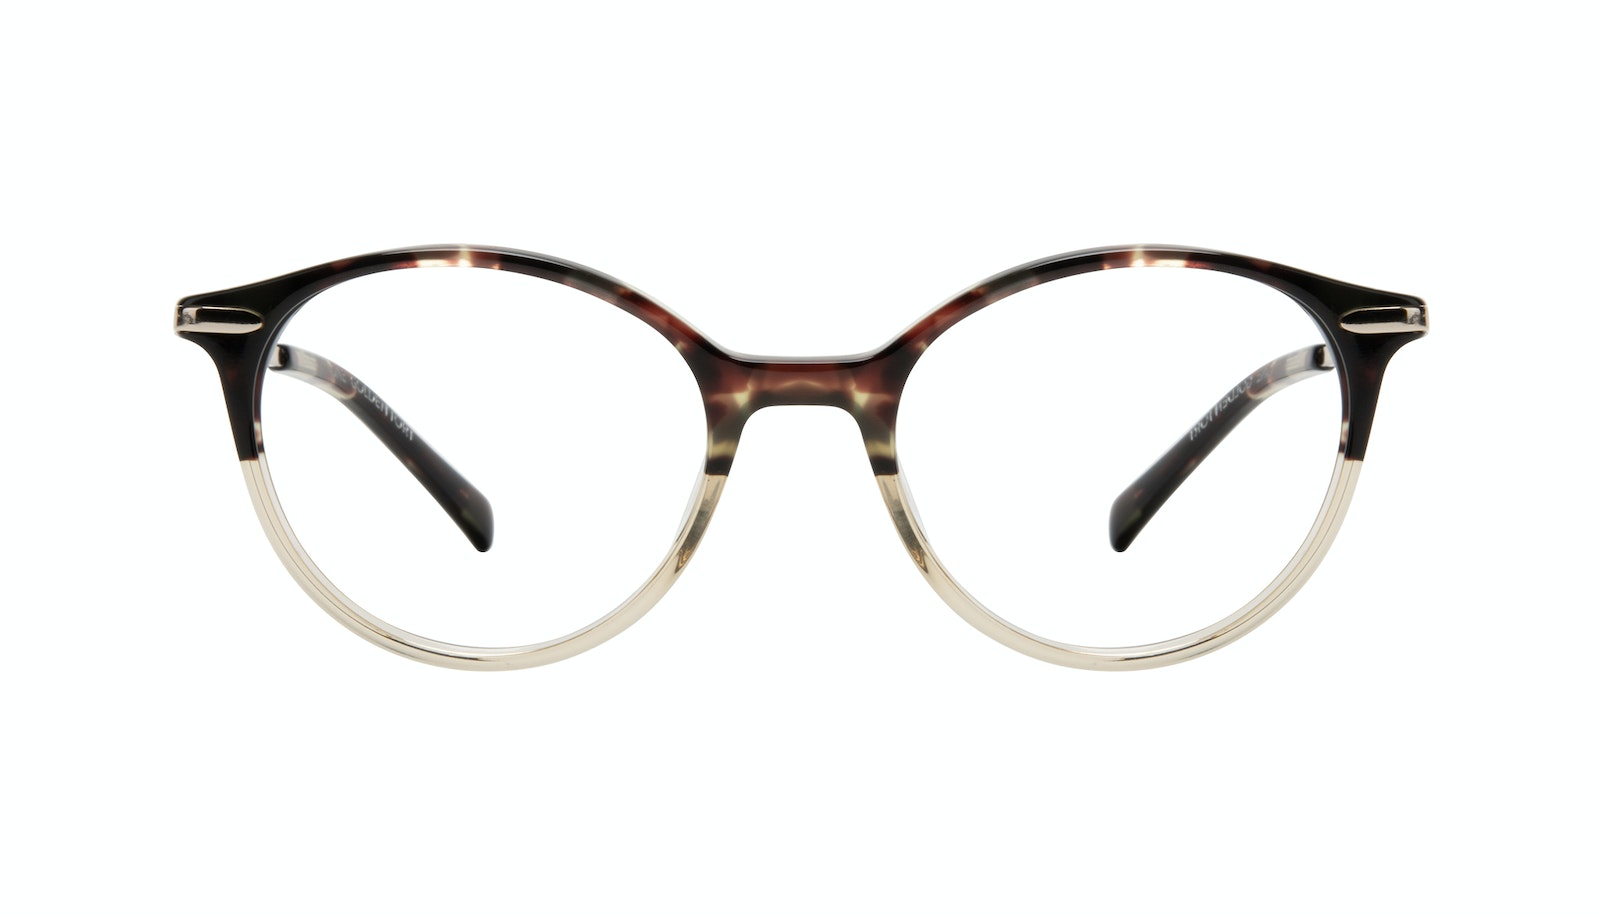 Affordable Fashion Glasses Round Eyeglasses Women One Golden Tort